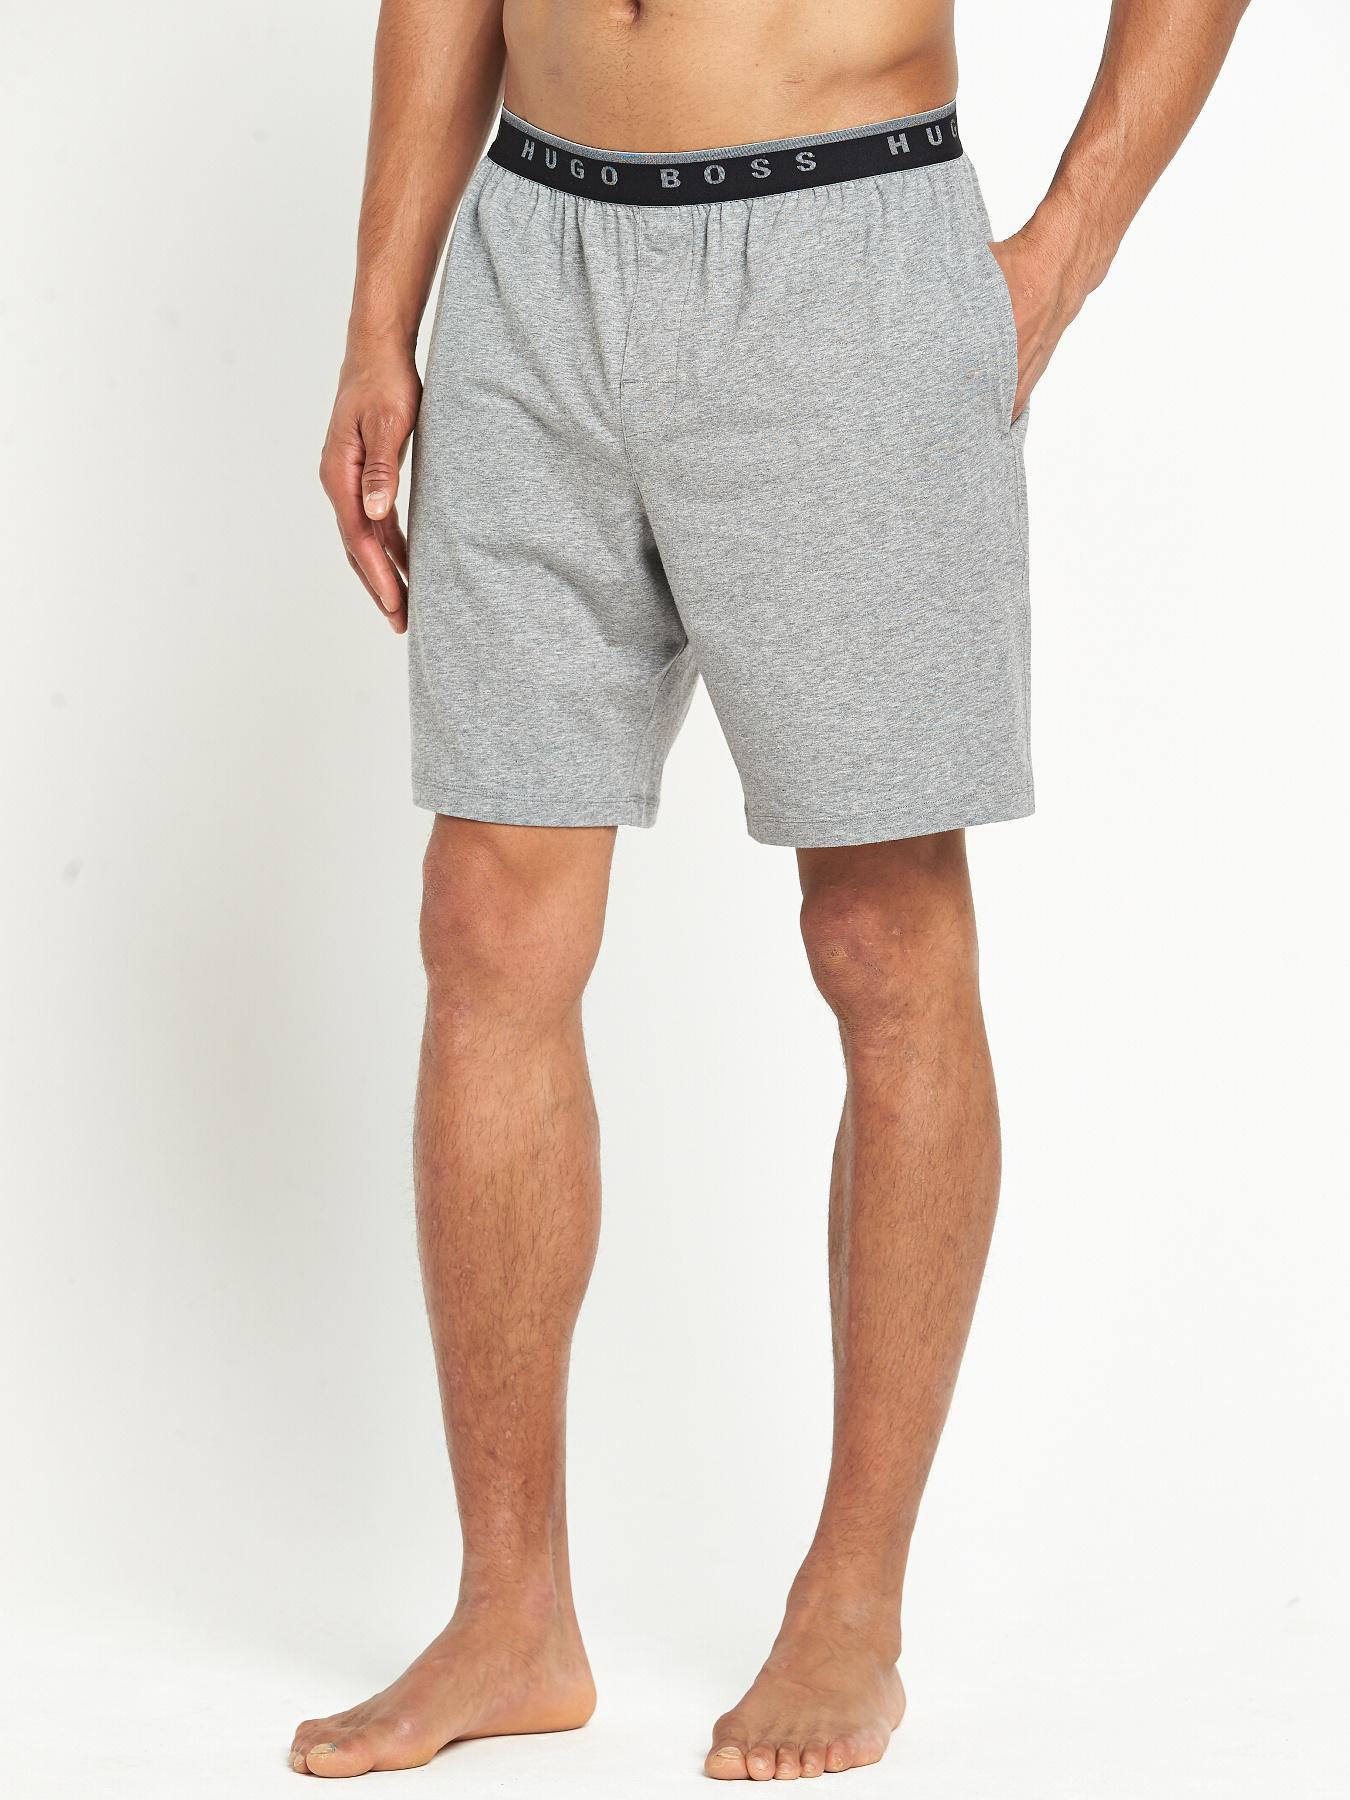 Hugo Boss Mens Jersey Shorts - Grey, Grey